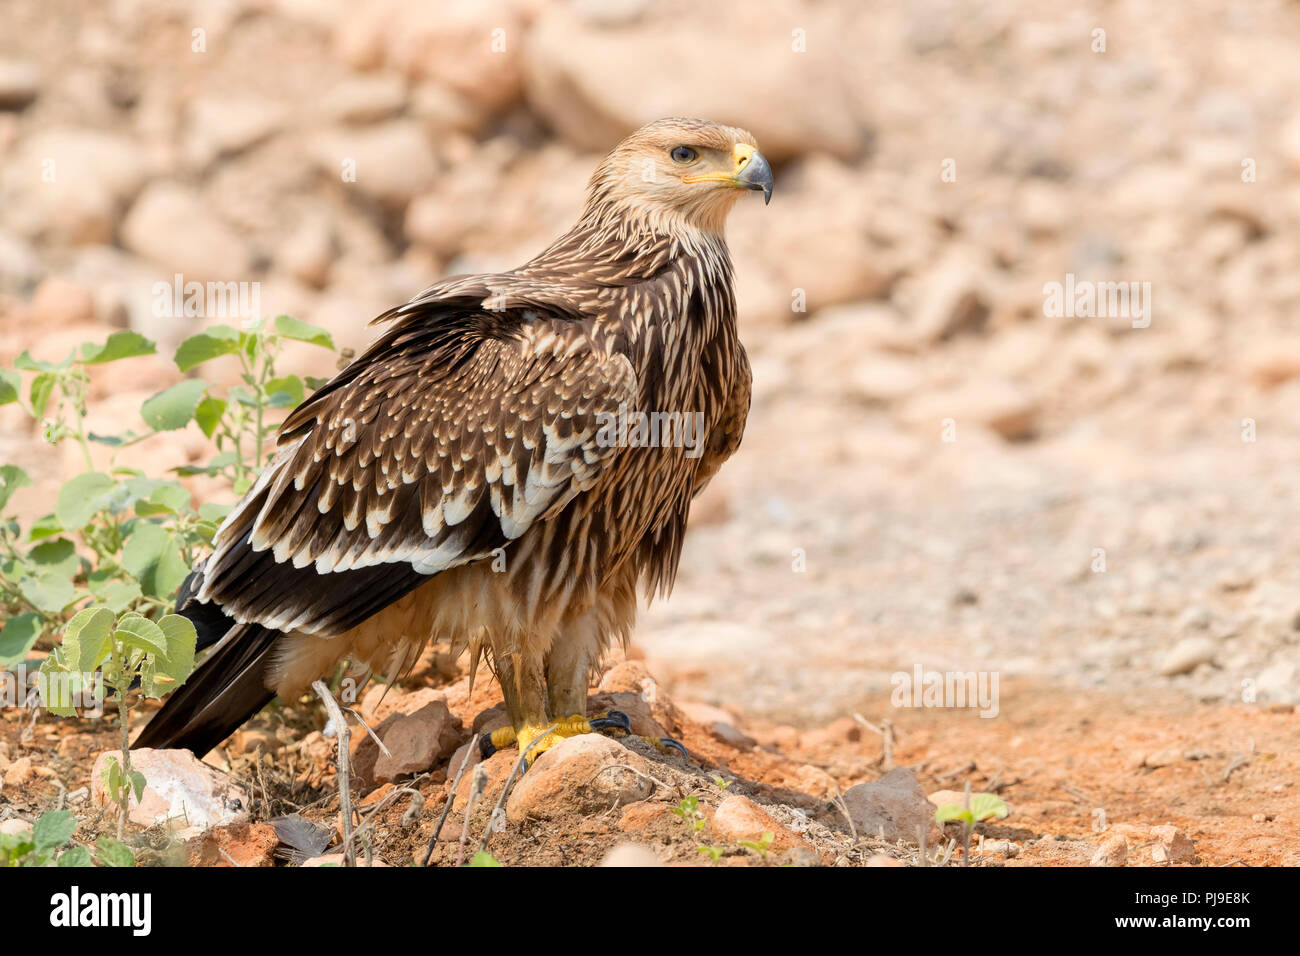 Eastern Imperial Eagle (Aquila heliaca), juvenile standing on the ground - Stock Image